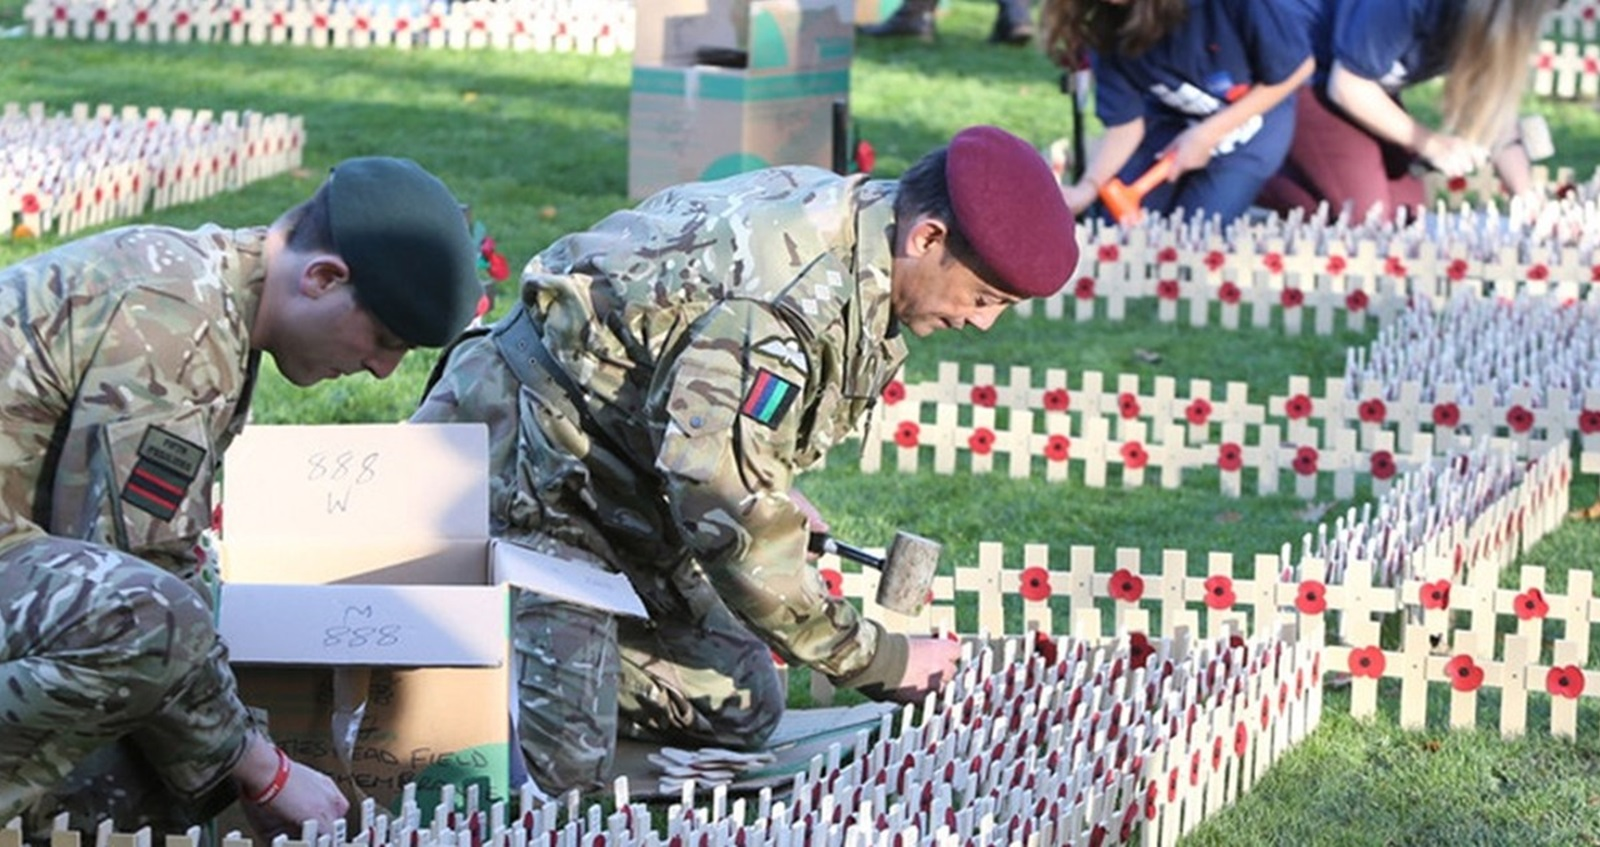 Volunteers from the Armed Forces creating Field of Remembrance